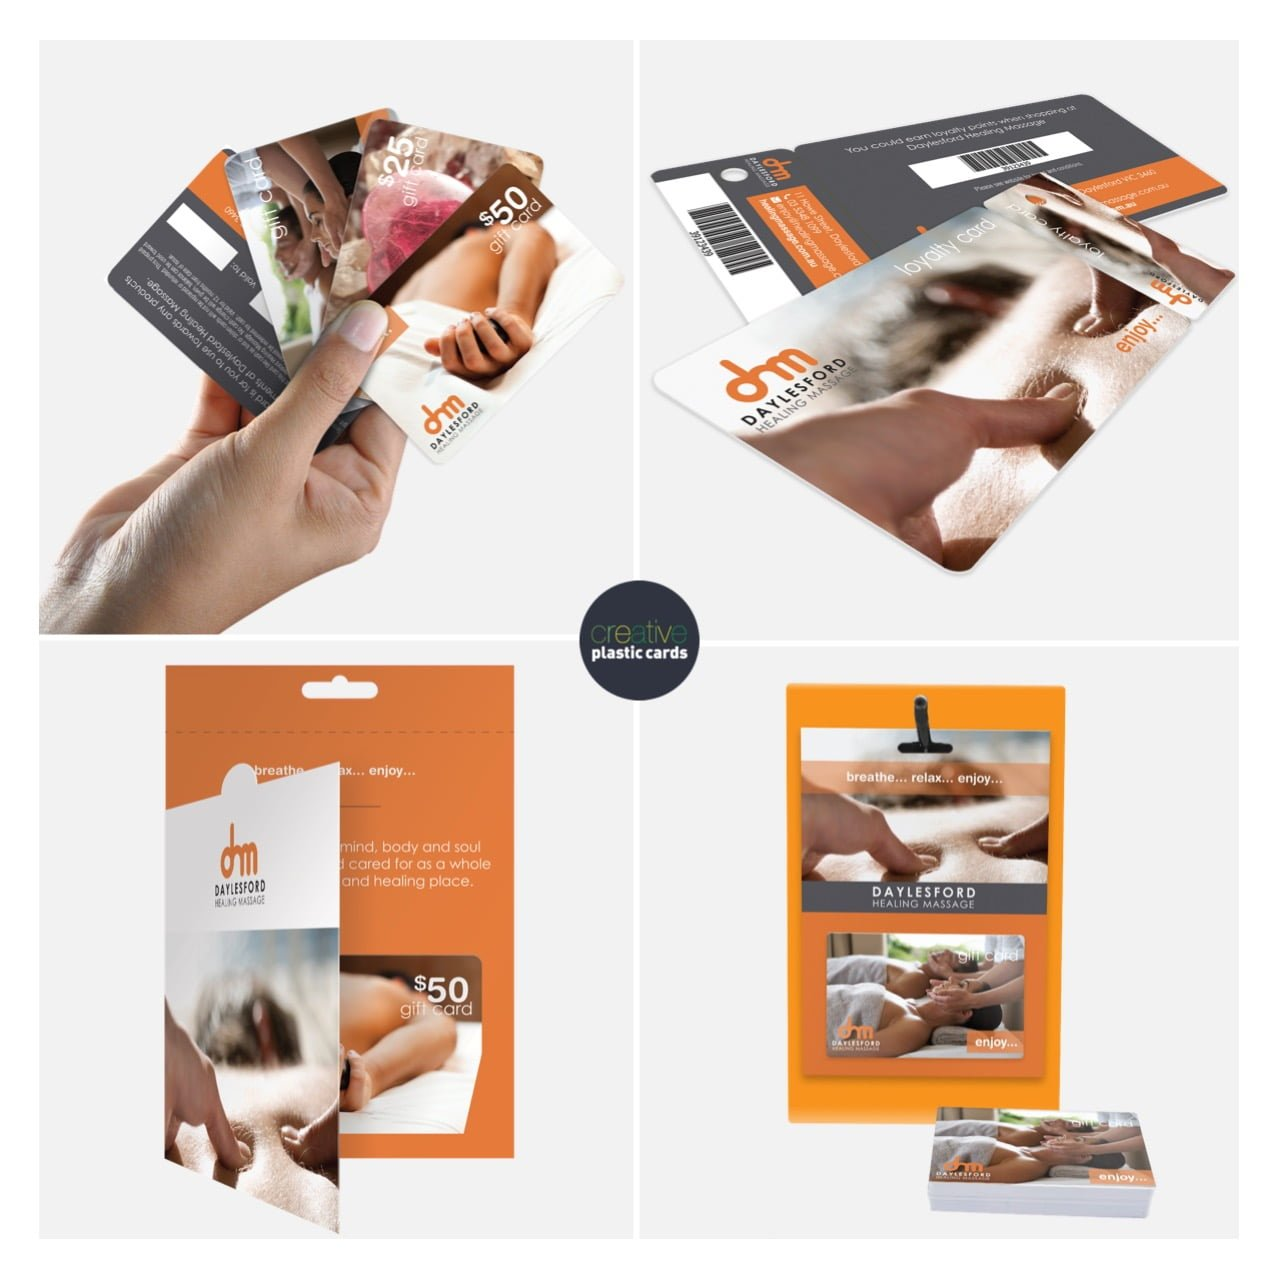 Daylesford Healing Massage - Plastic & Paper Printing Product Collage